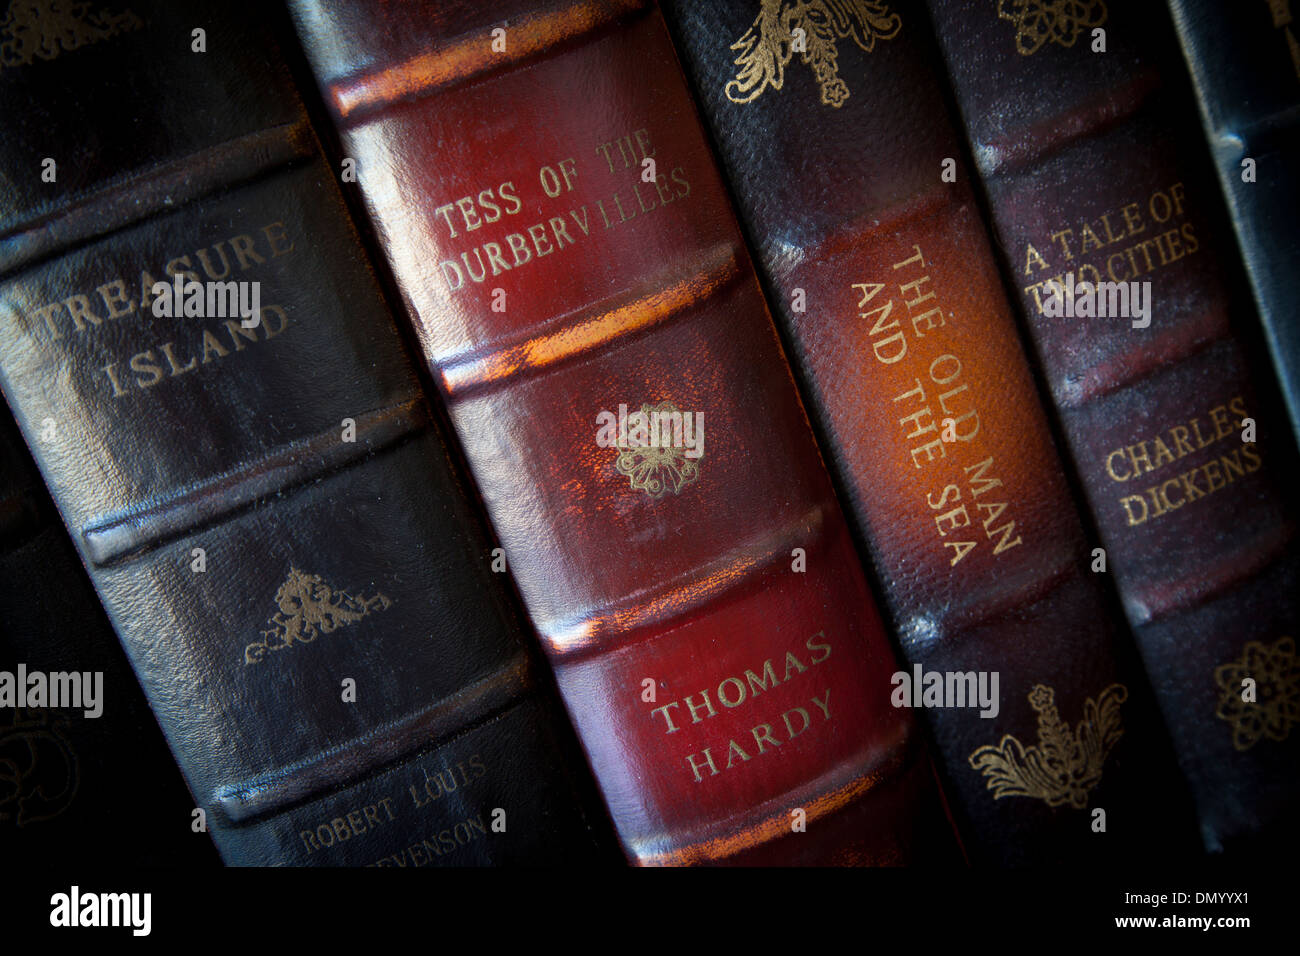 Collection of classic antique books from historic authors - Stock Image